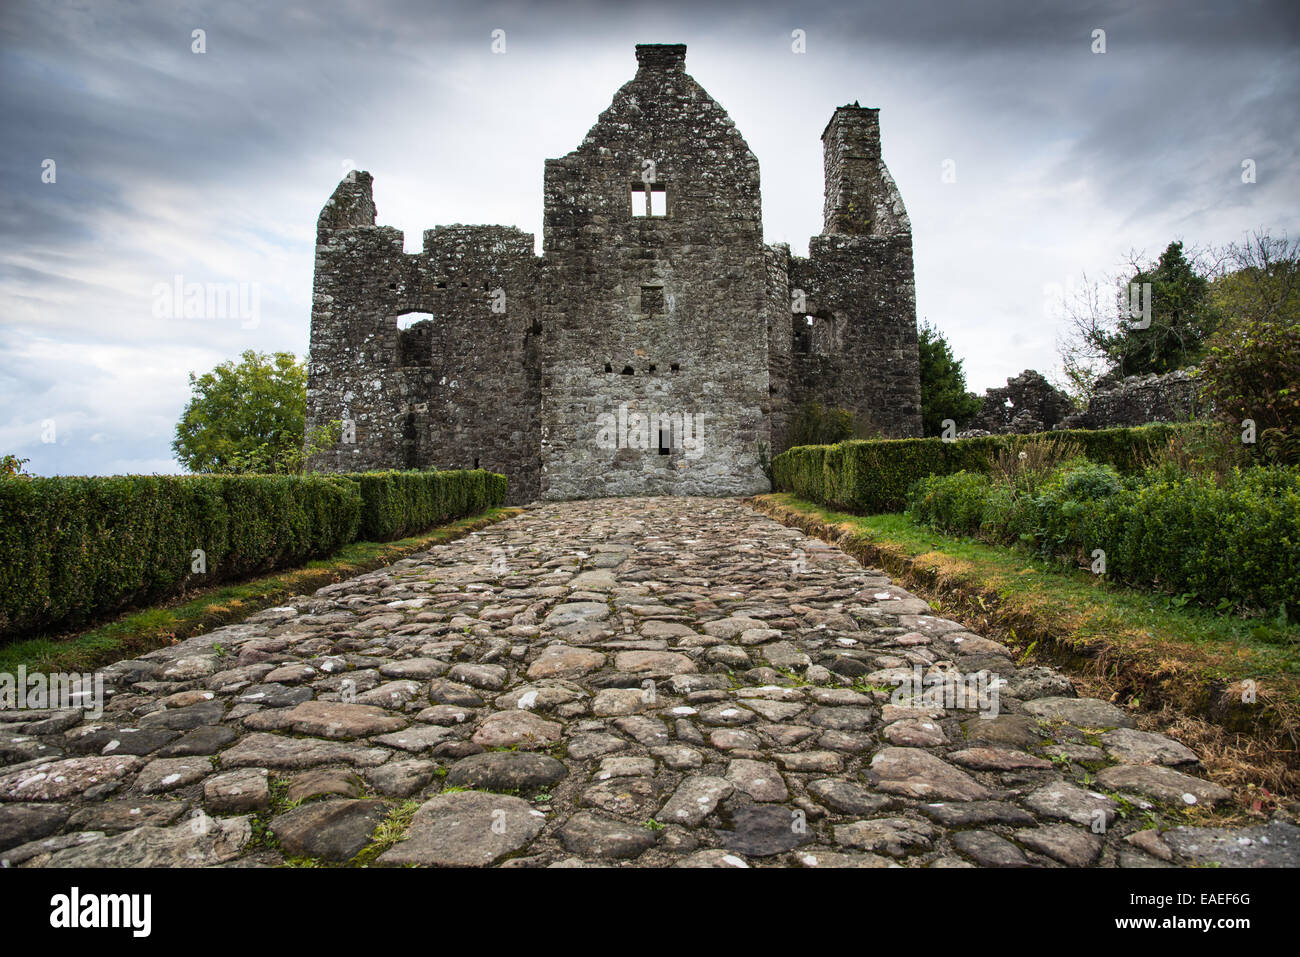 Tully Castle, County Fermanagh, Northern Ireland. - Stock Image